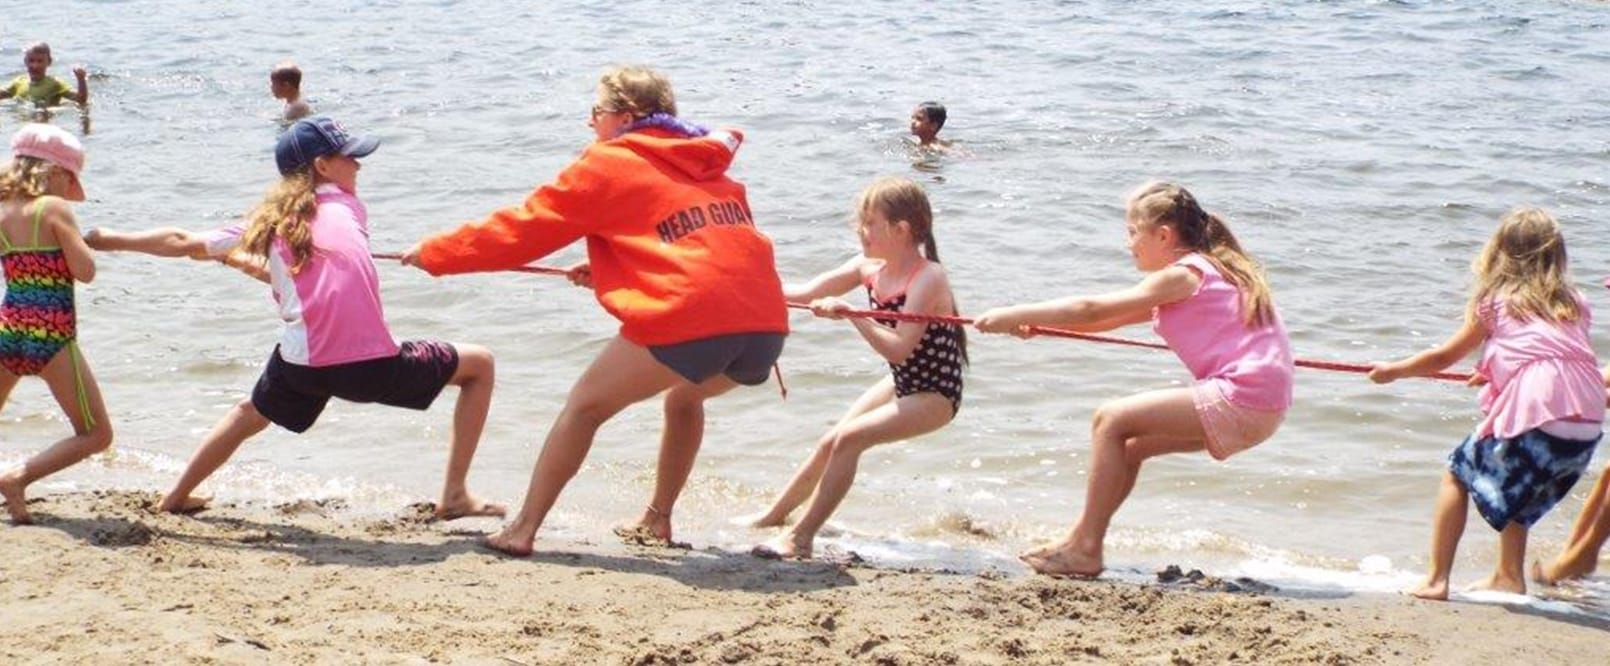 Beach tug of war